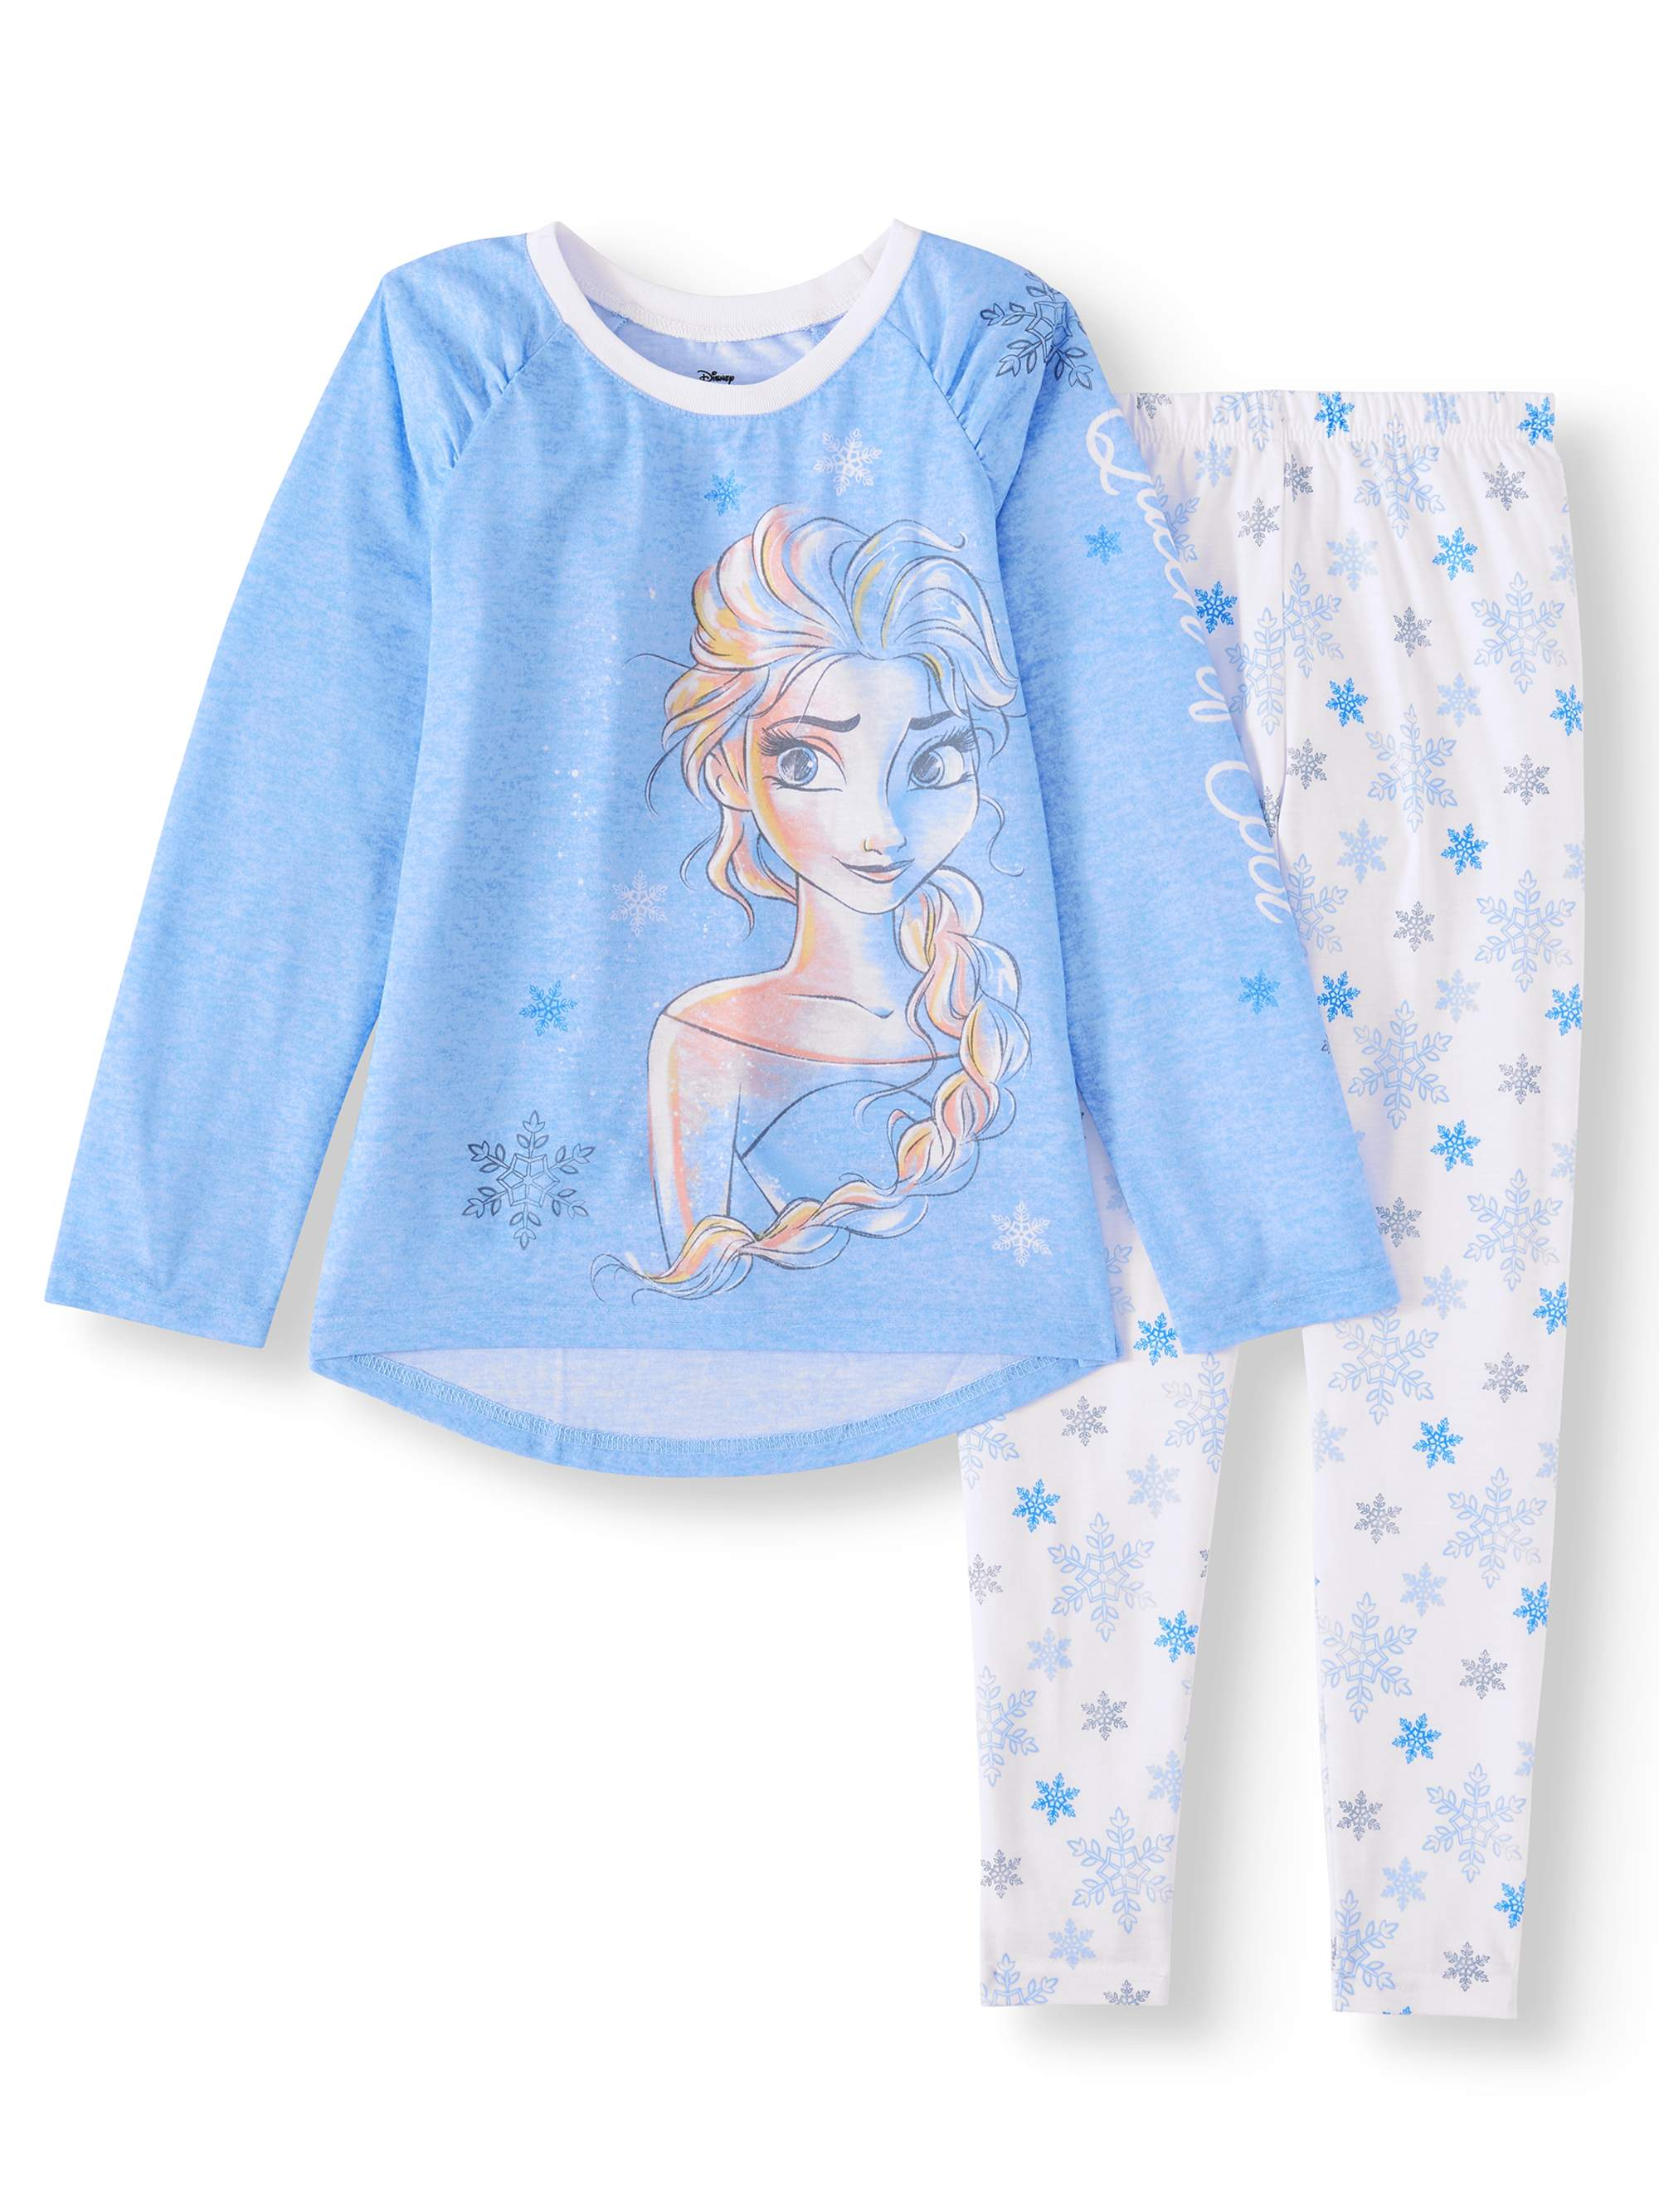 Frozen Elsa Girl's 2-Piece Pajama Set (Little Girls & Big Girls)